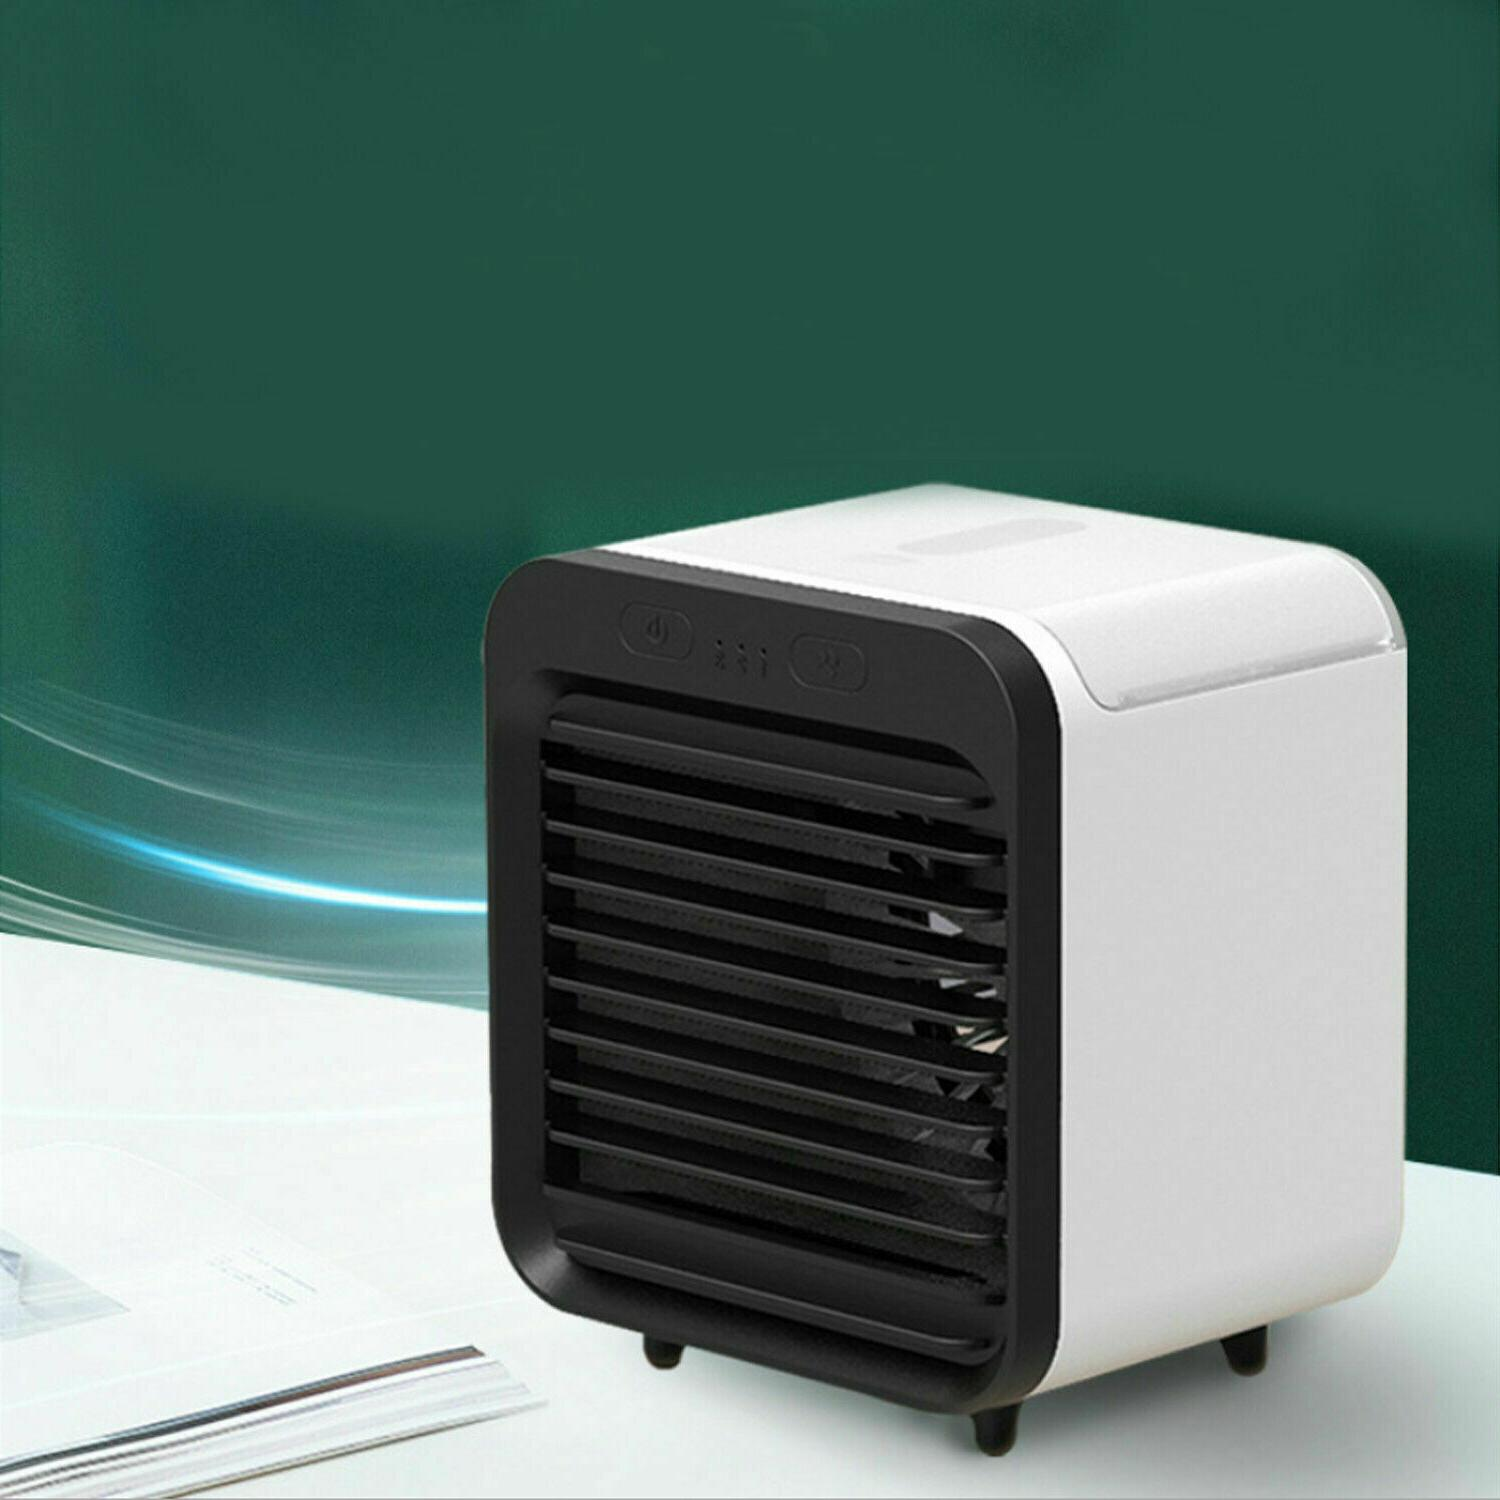 Portable Conditioner Cooler Fan Humidifier Air